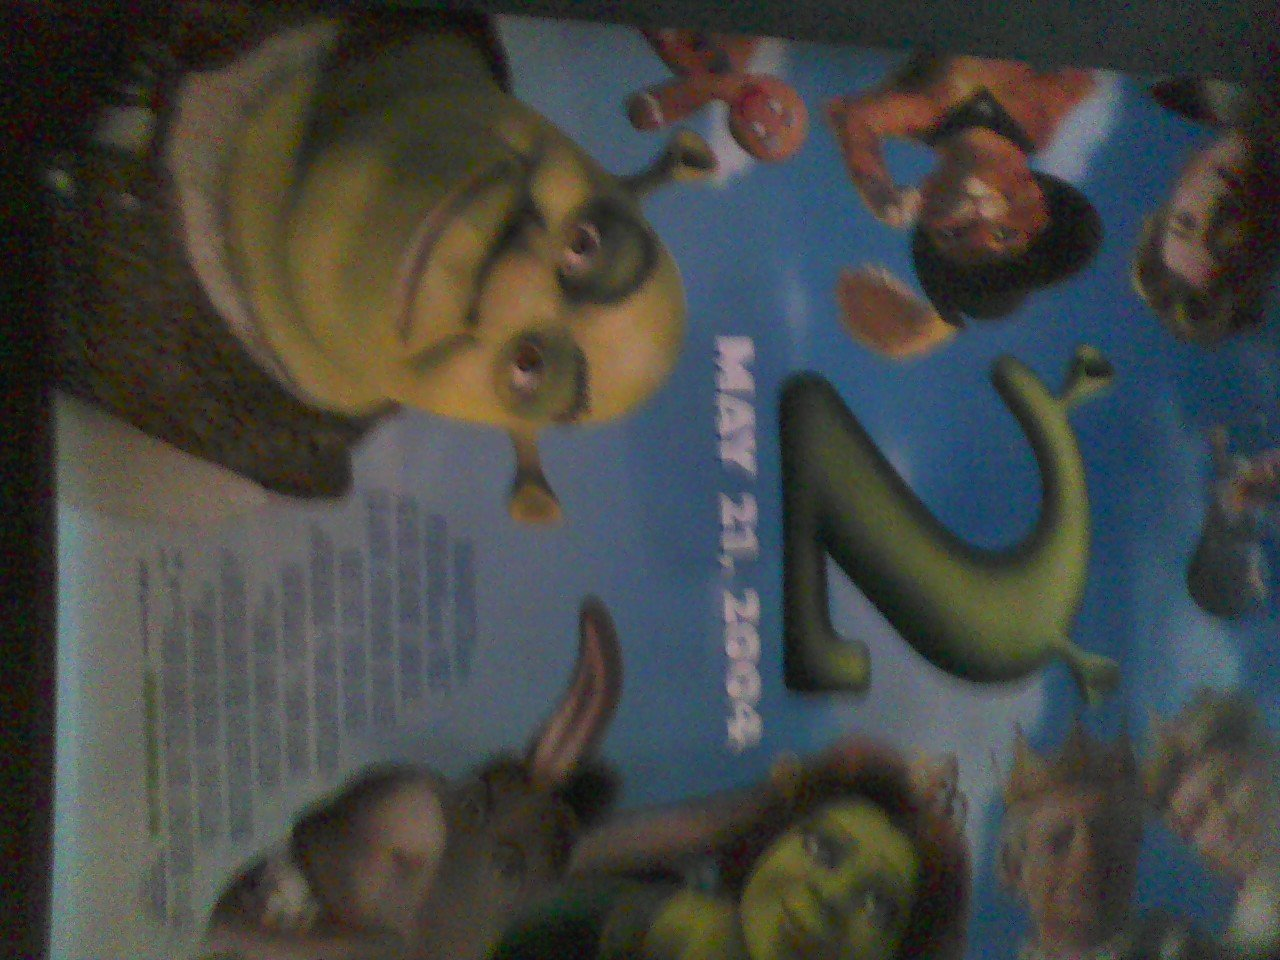 Shrek 2 Movie Poster Approx 4 Feet By 5 Feet 9 Inches